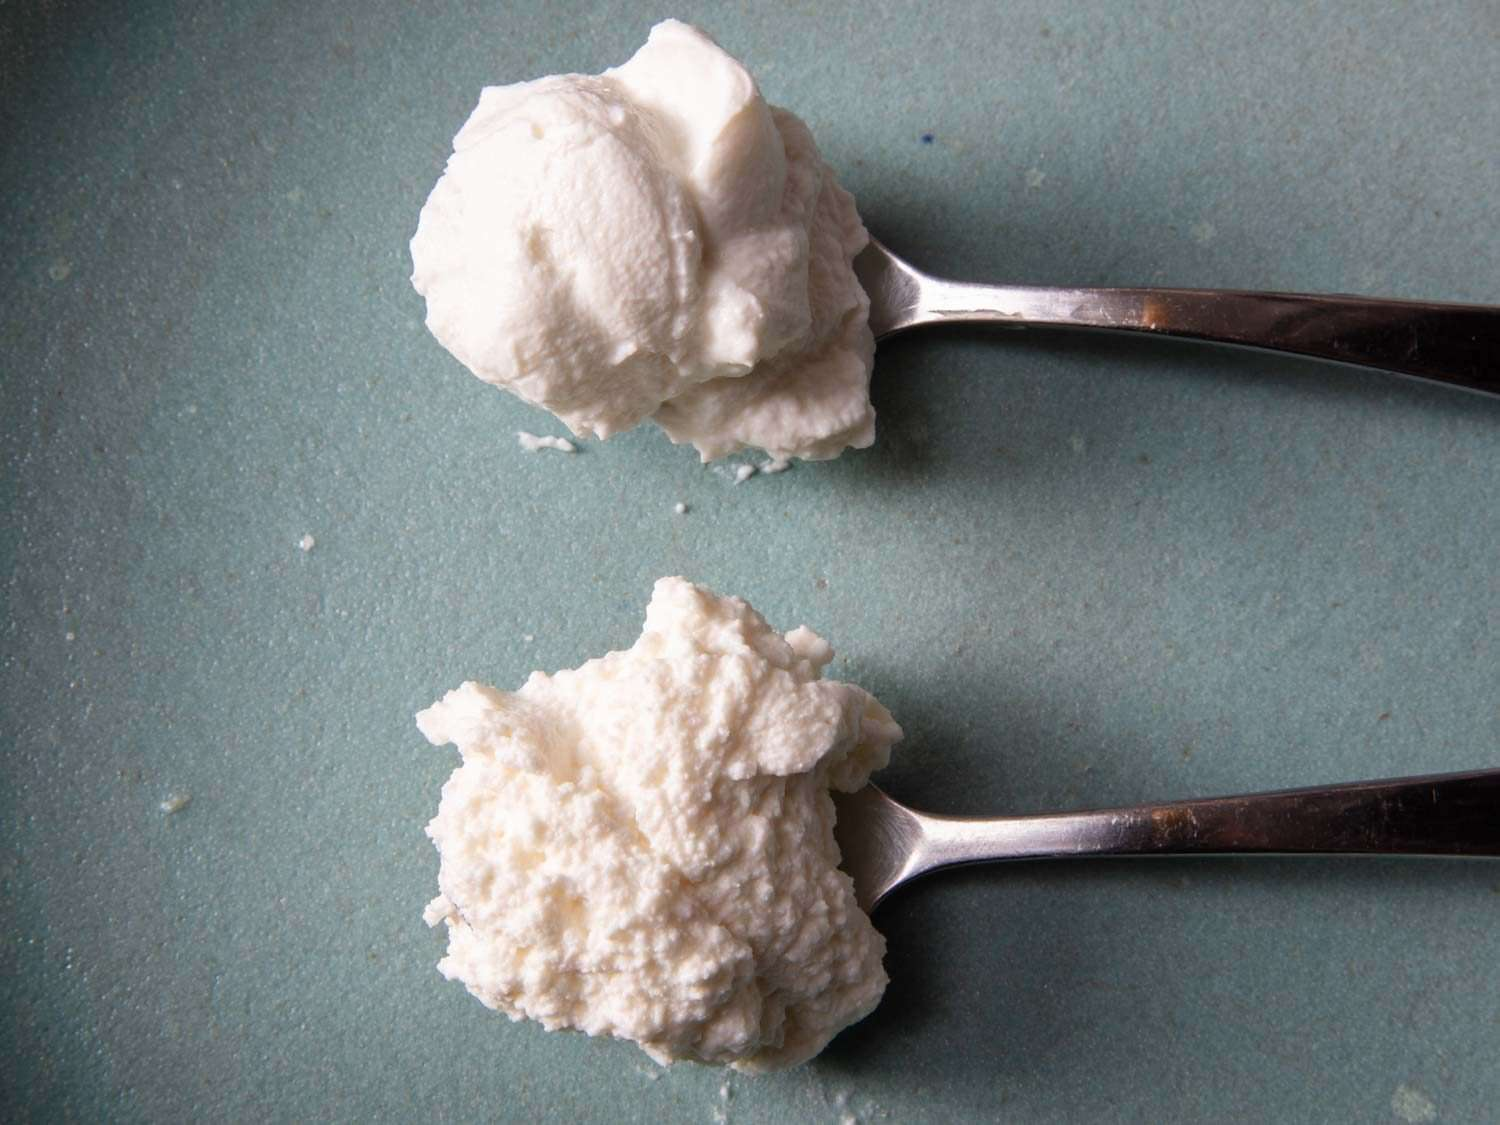 side by side comparison of two ricotta styles, one grainy and coarse, the other creamy and smooth